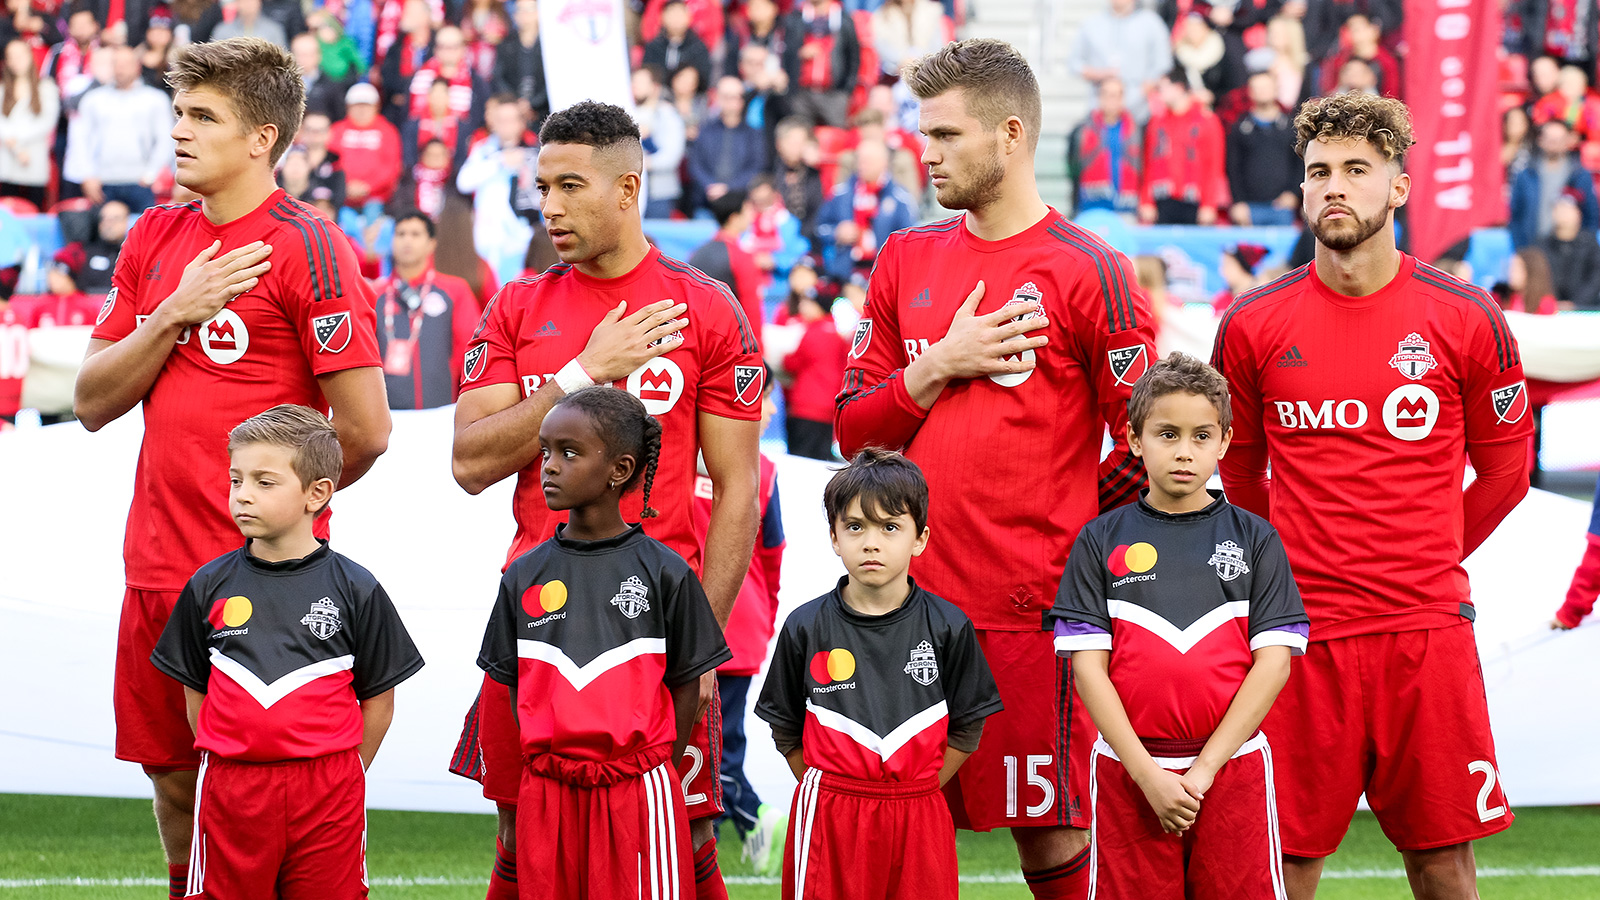 Toronto FC players during the national anthem.